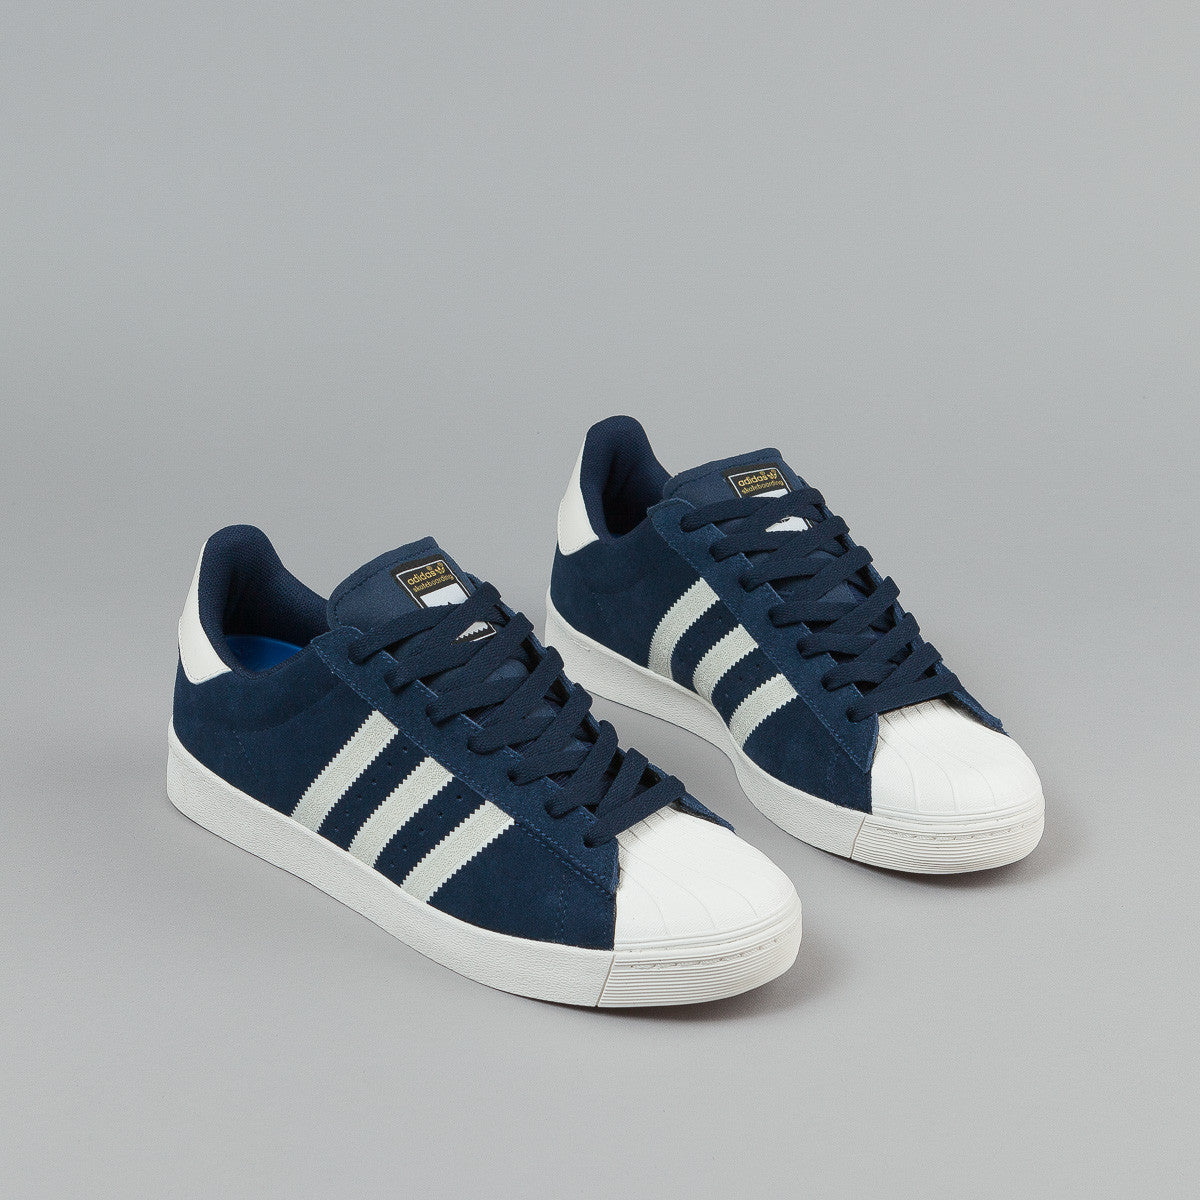 Cheap Adidas Superstar Adicolor ( S80329 ) OVERKILL Berlin Sneaker